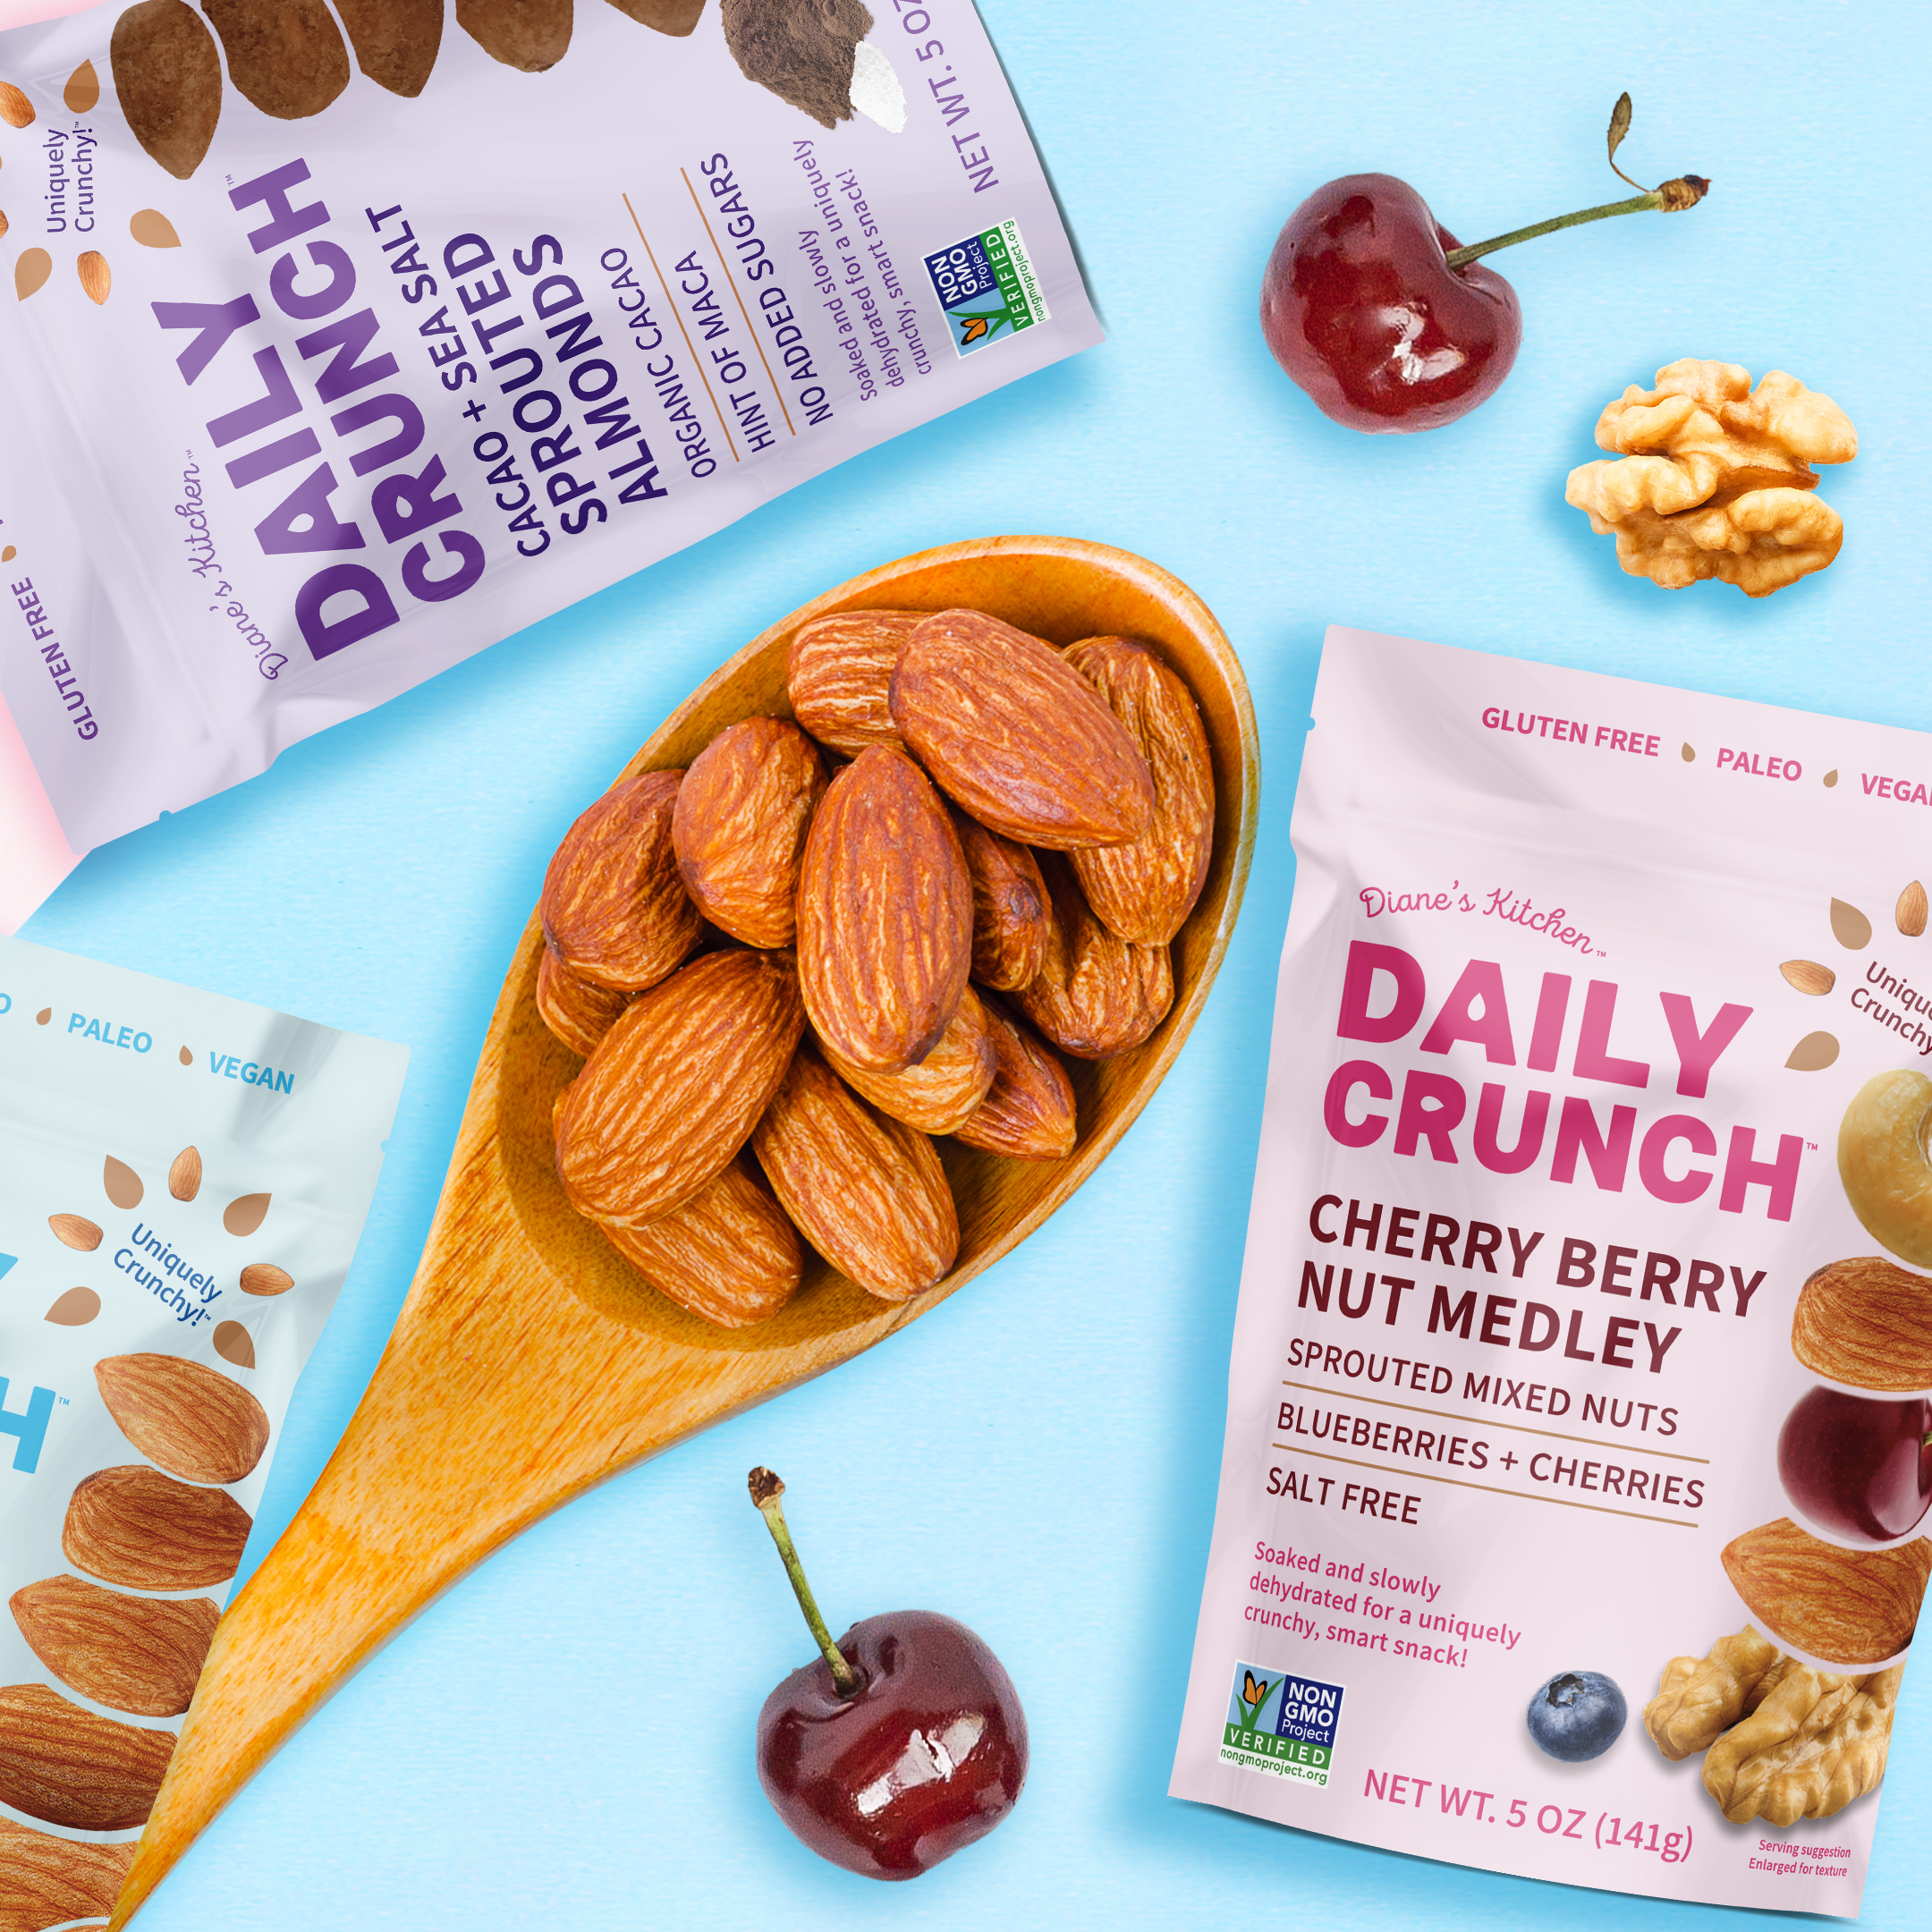 Meet a Maker: Laurel Orley, CEO + Co-Founder of Daily Crunch Snacks